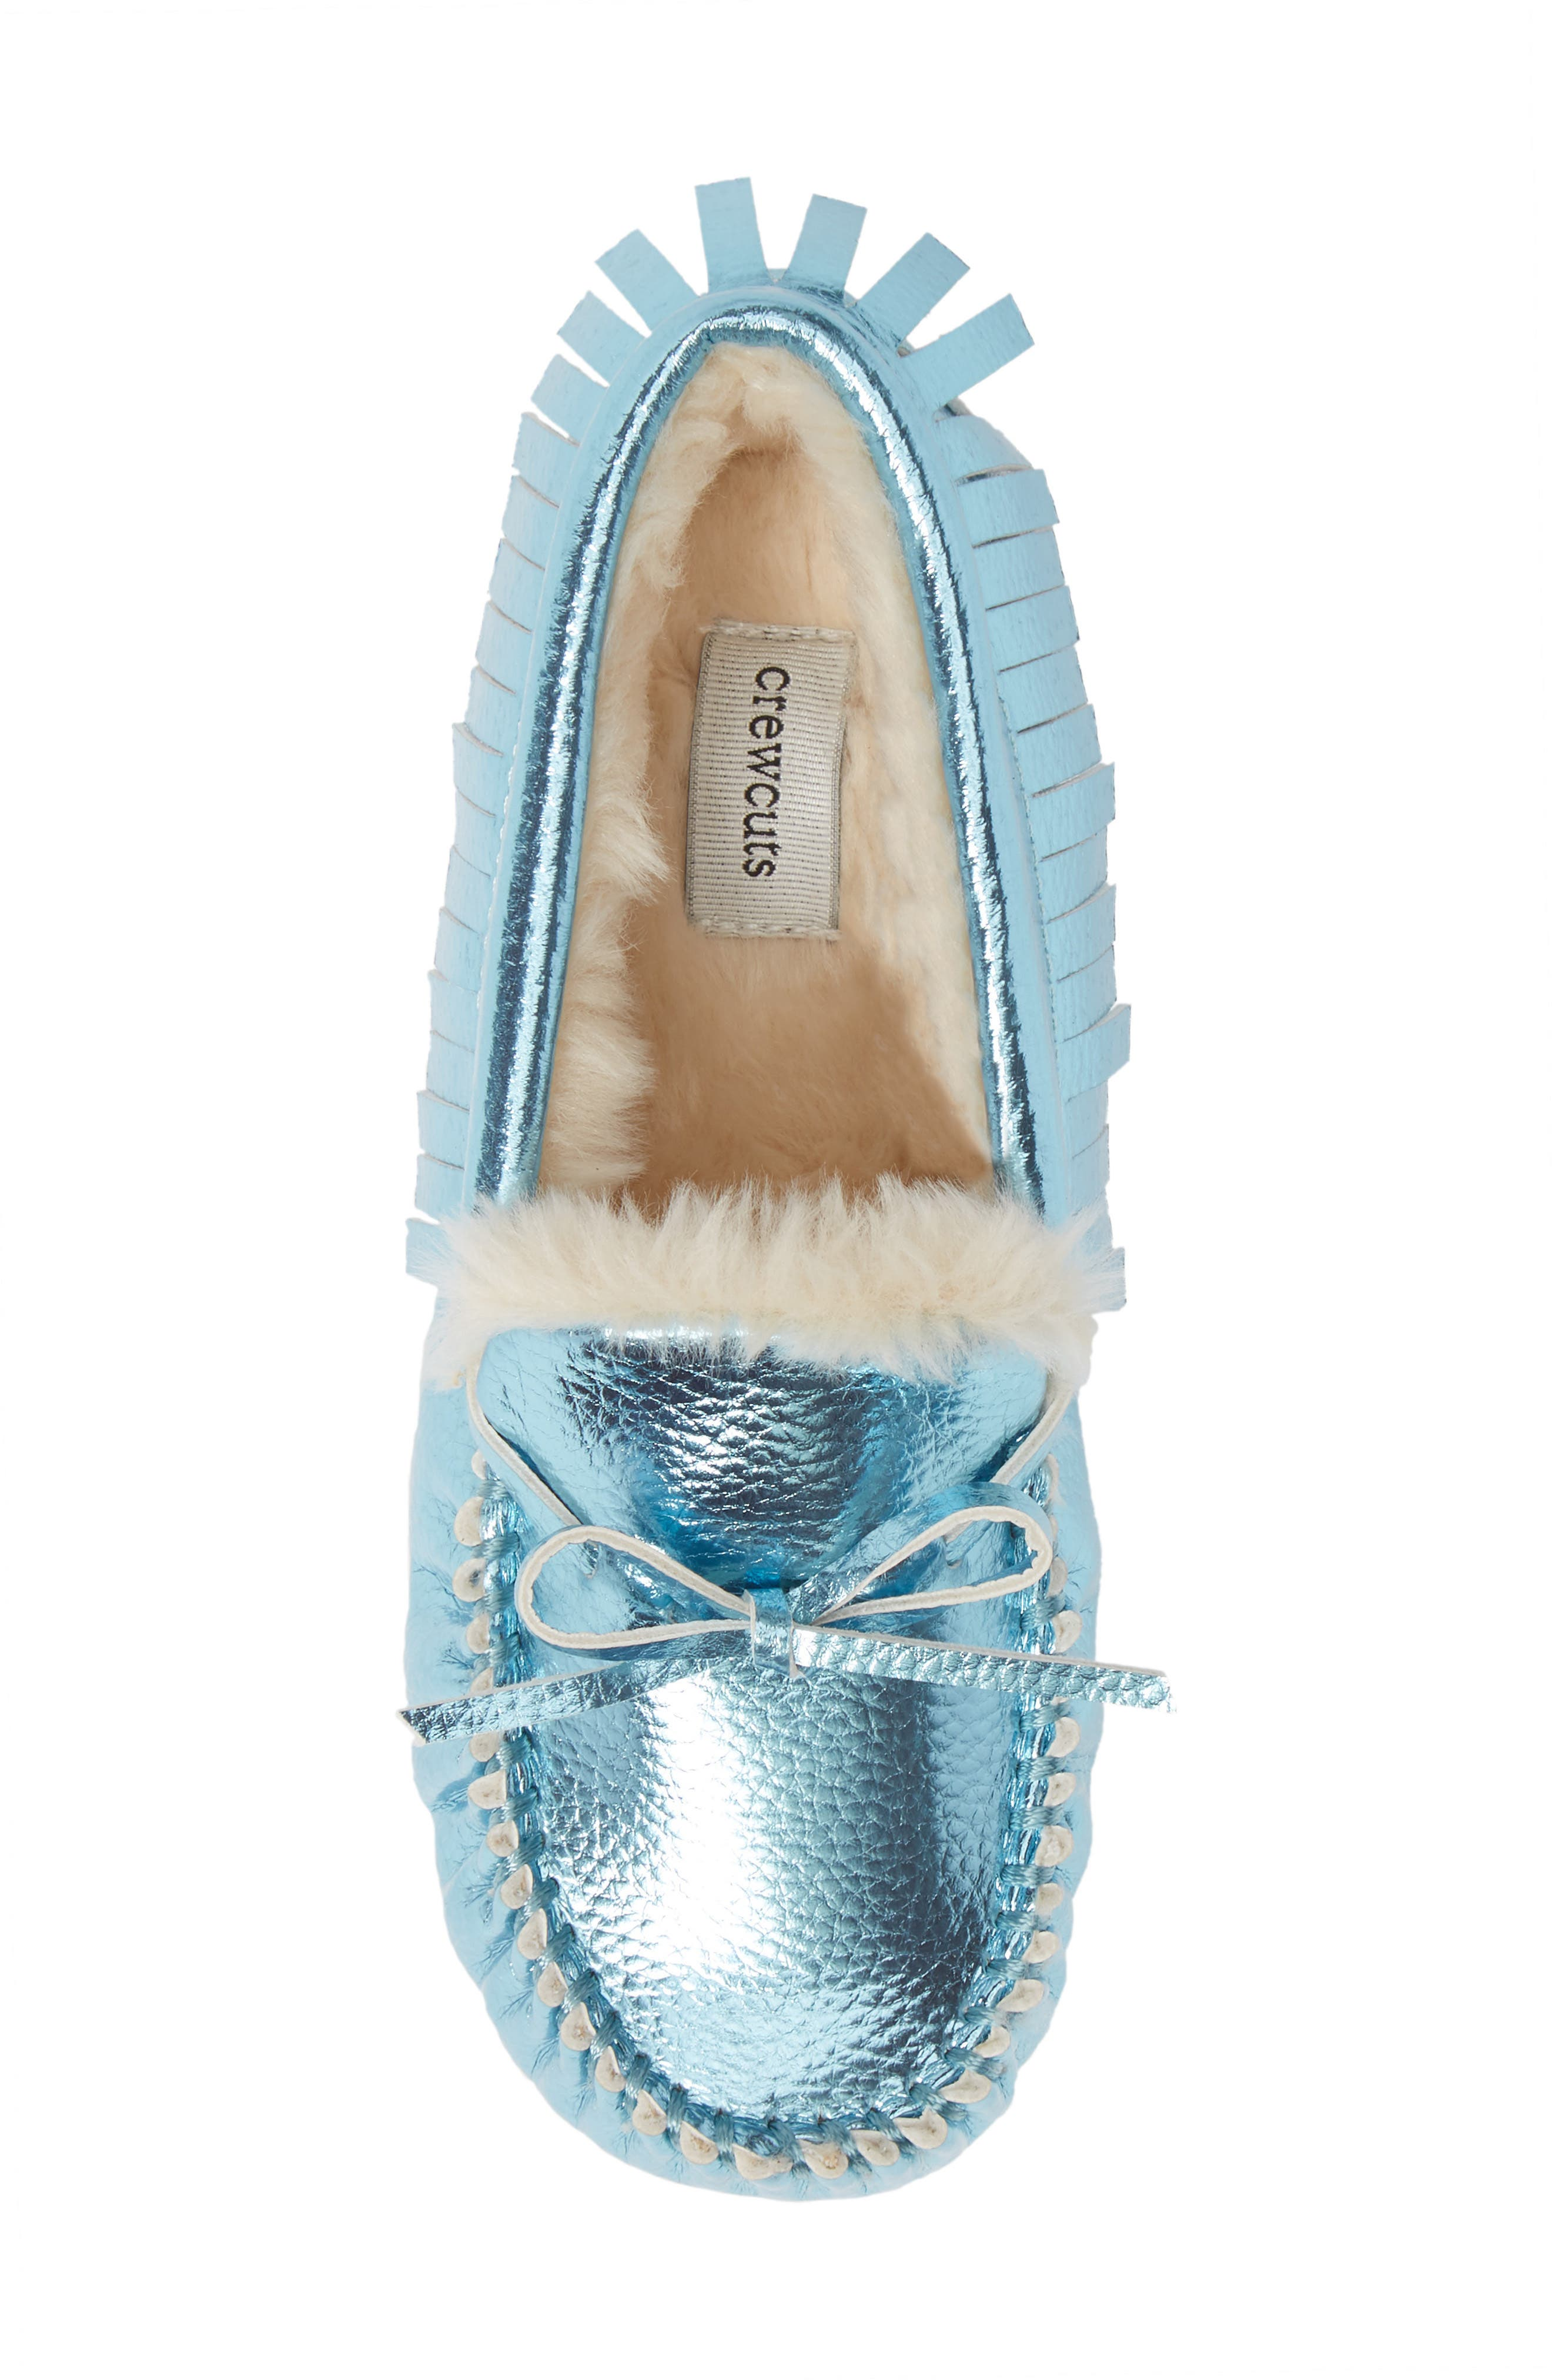 CREWCUTS BY J.CREW,                             Metallic Moccasin,                             Alternate thumbnail 5, color,                             FADED SKY